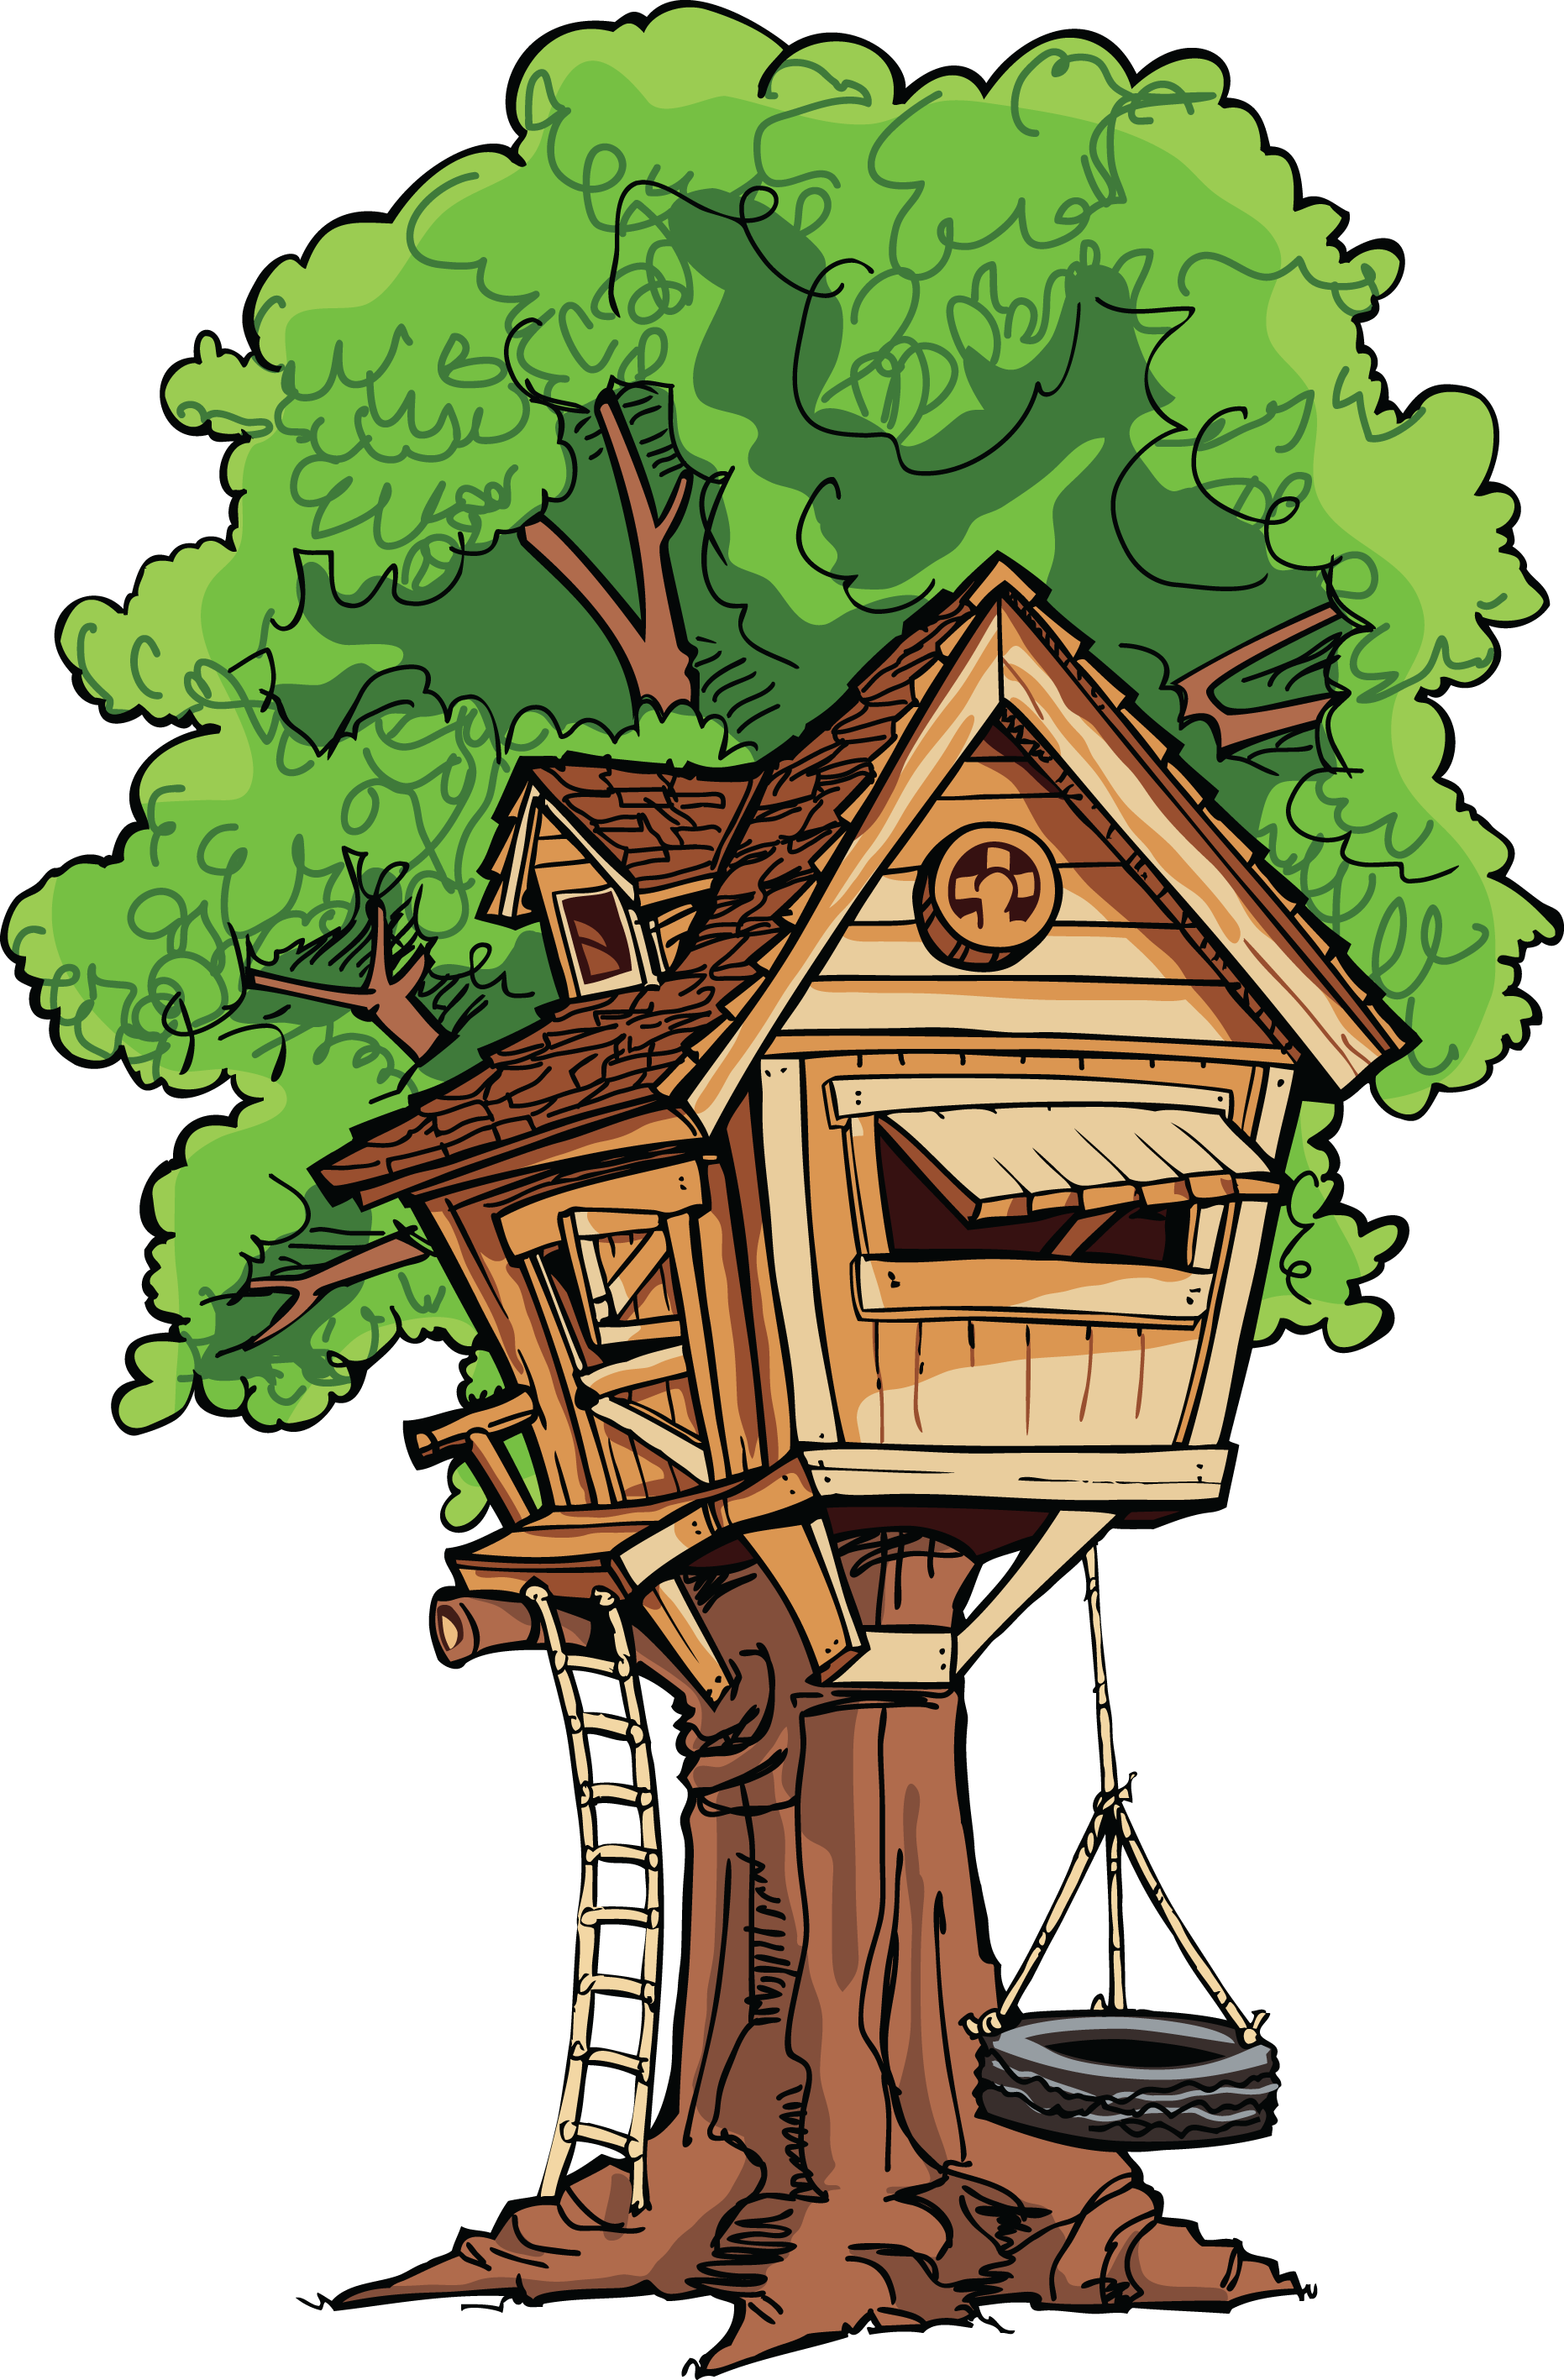 House at night clipart image black and white stock Tree House Clip Art | When you go into the creative world you have ... image black and white stock